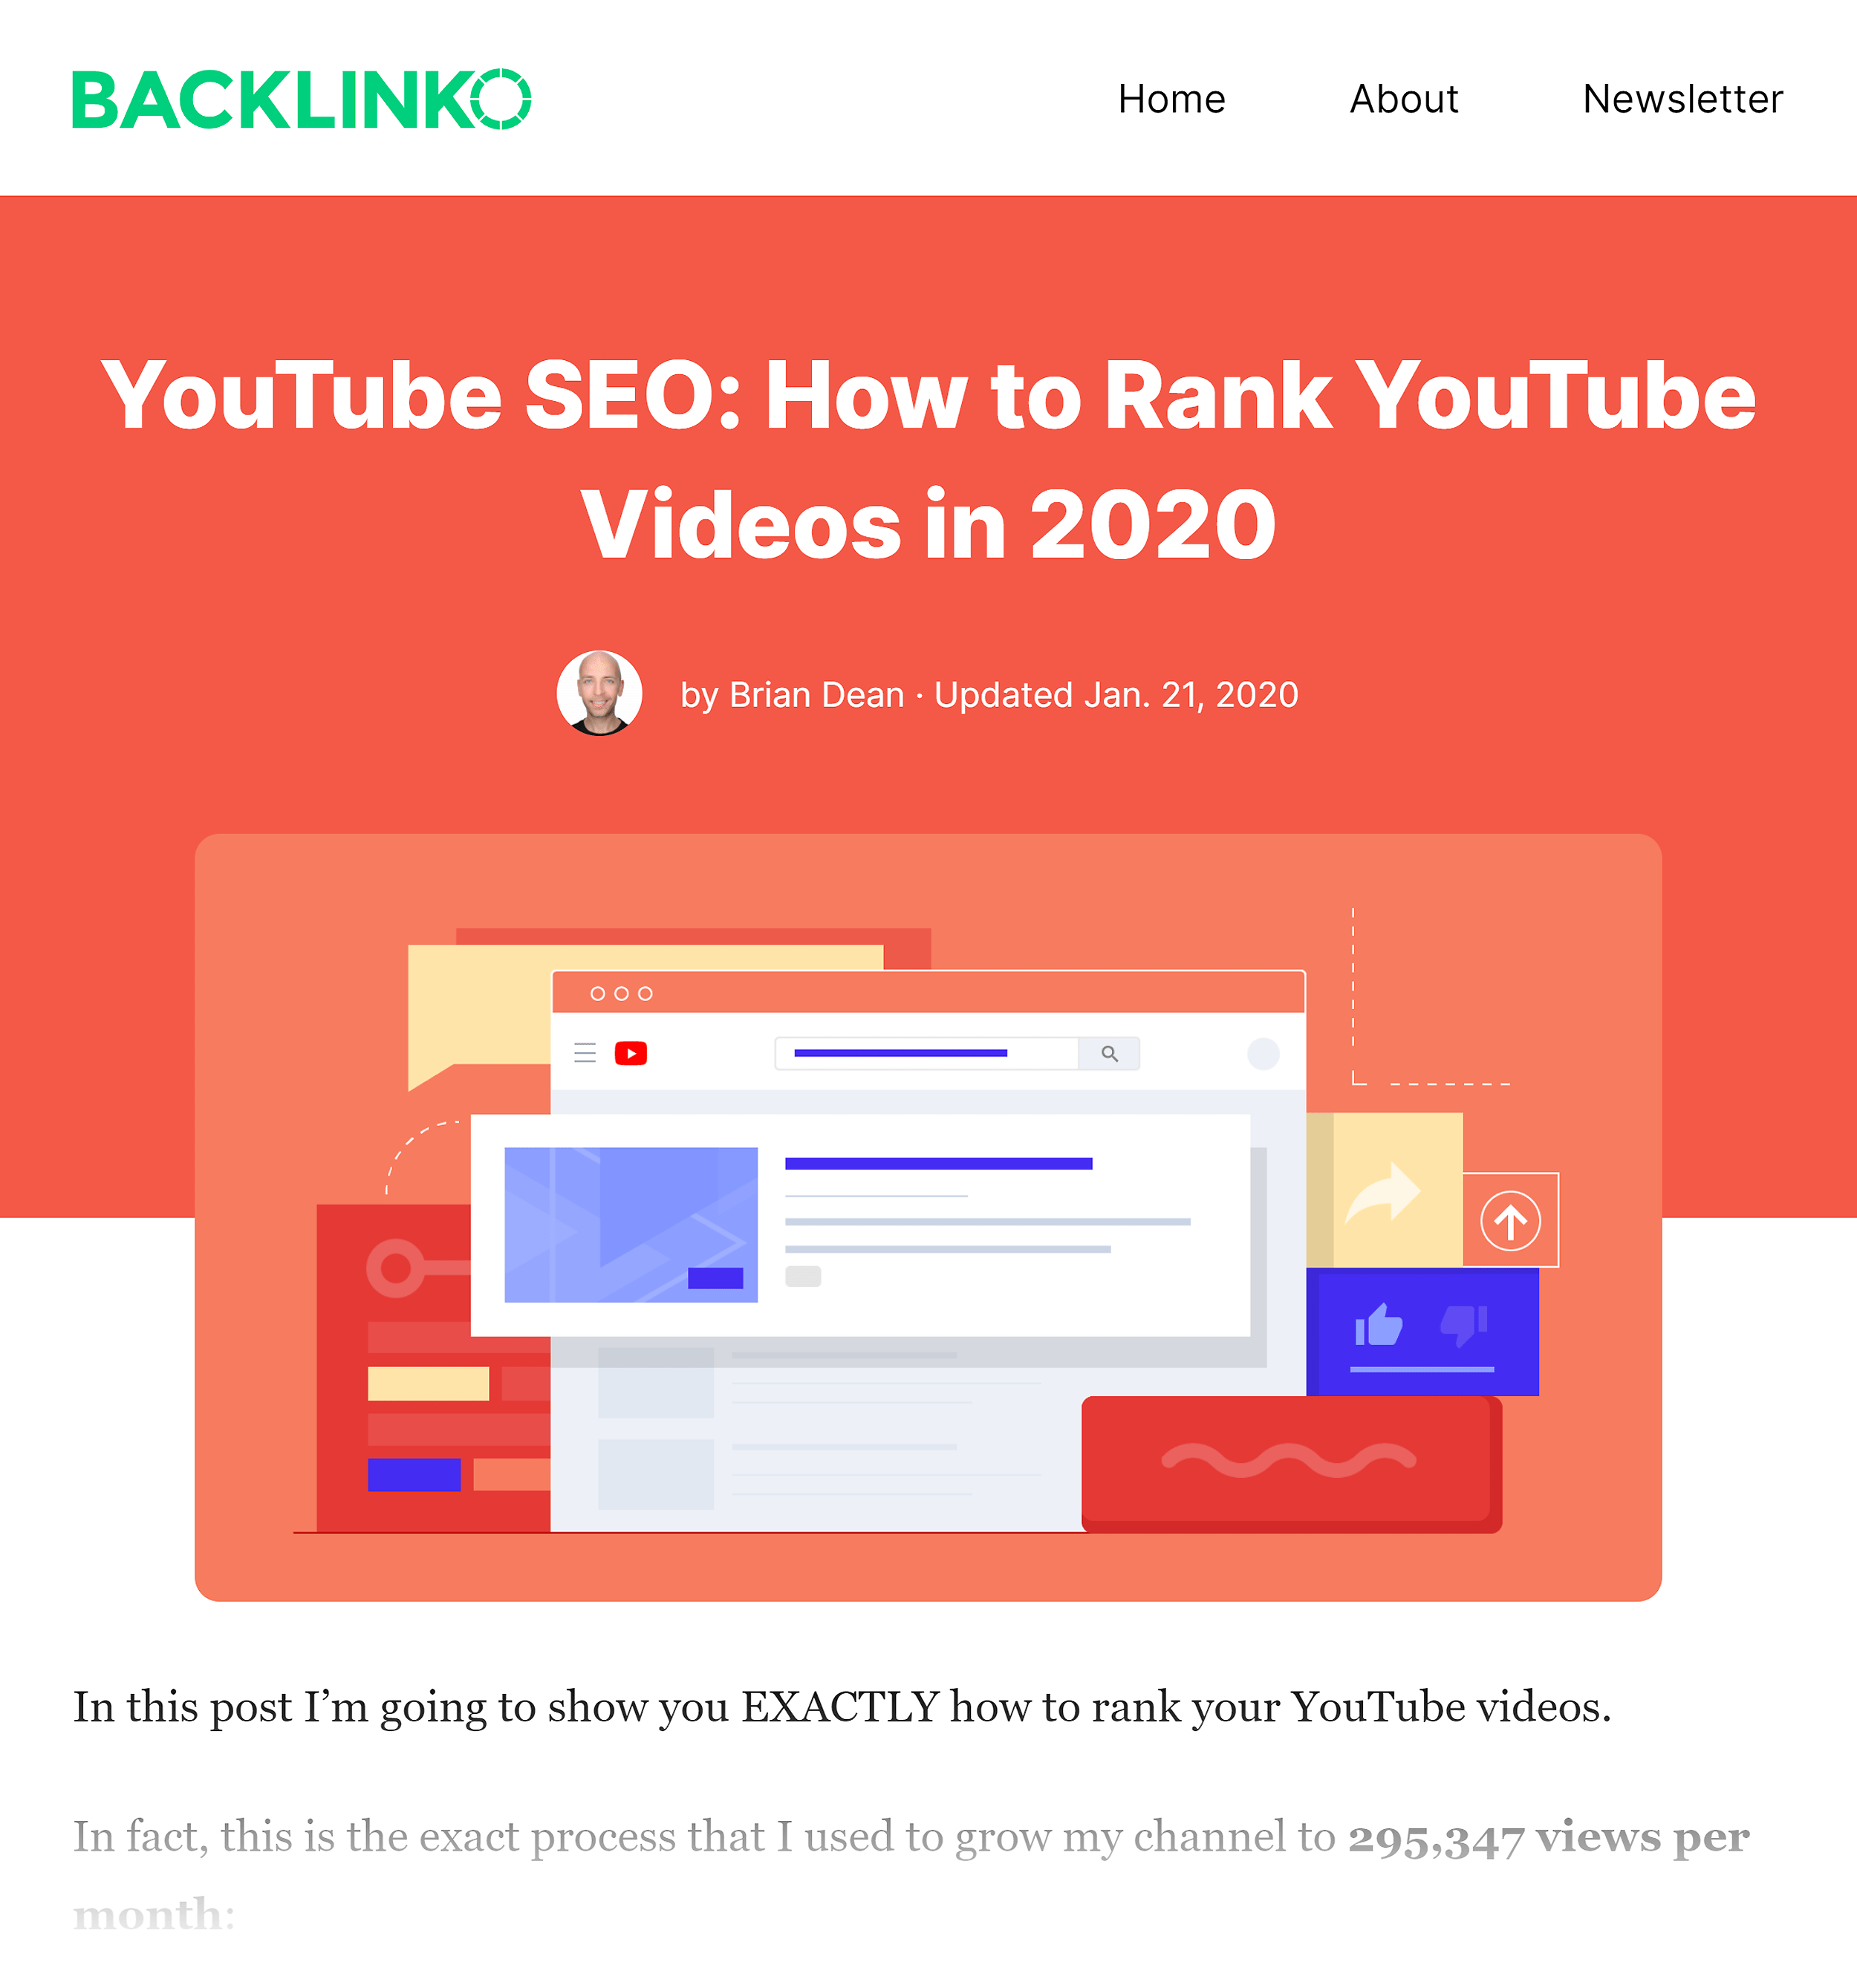 Backlinko – How to rank YouTube videos post